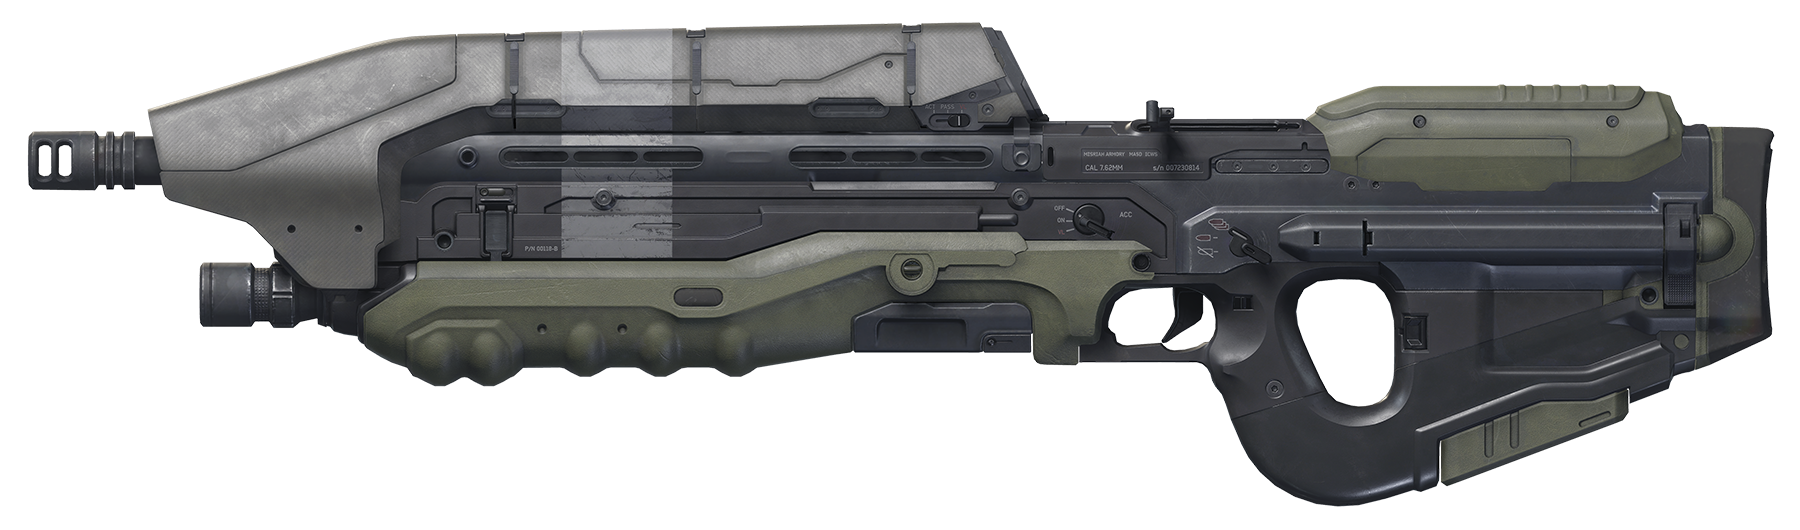 Halo assault rifle png. Image alteredrp halorp wikia